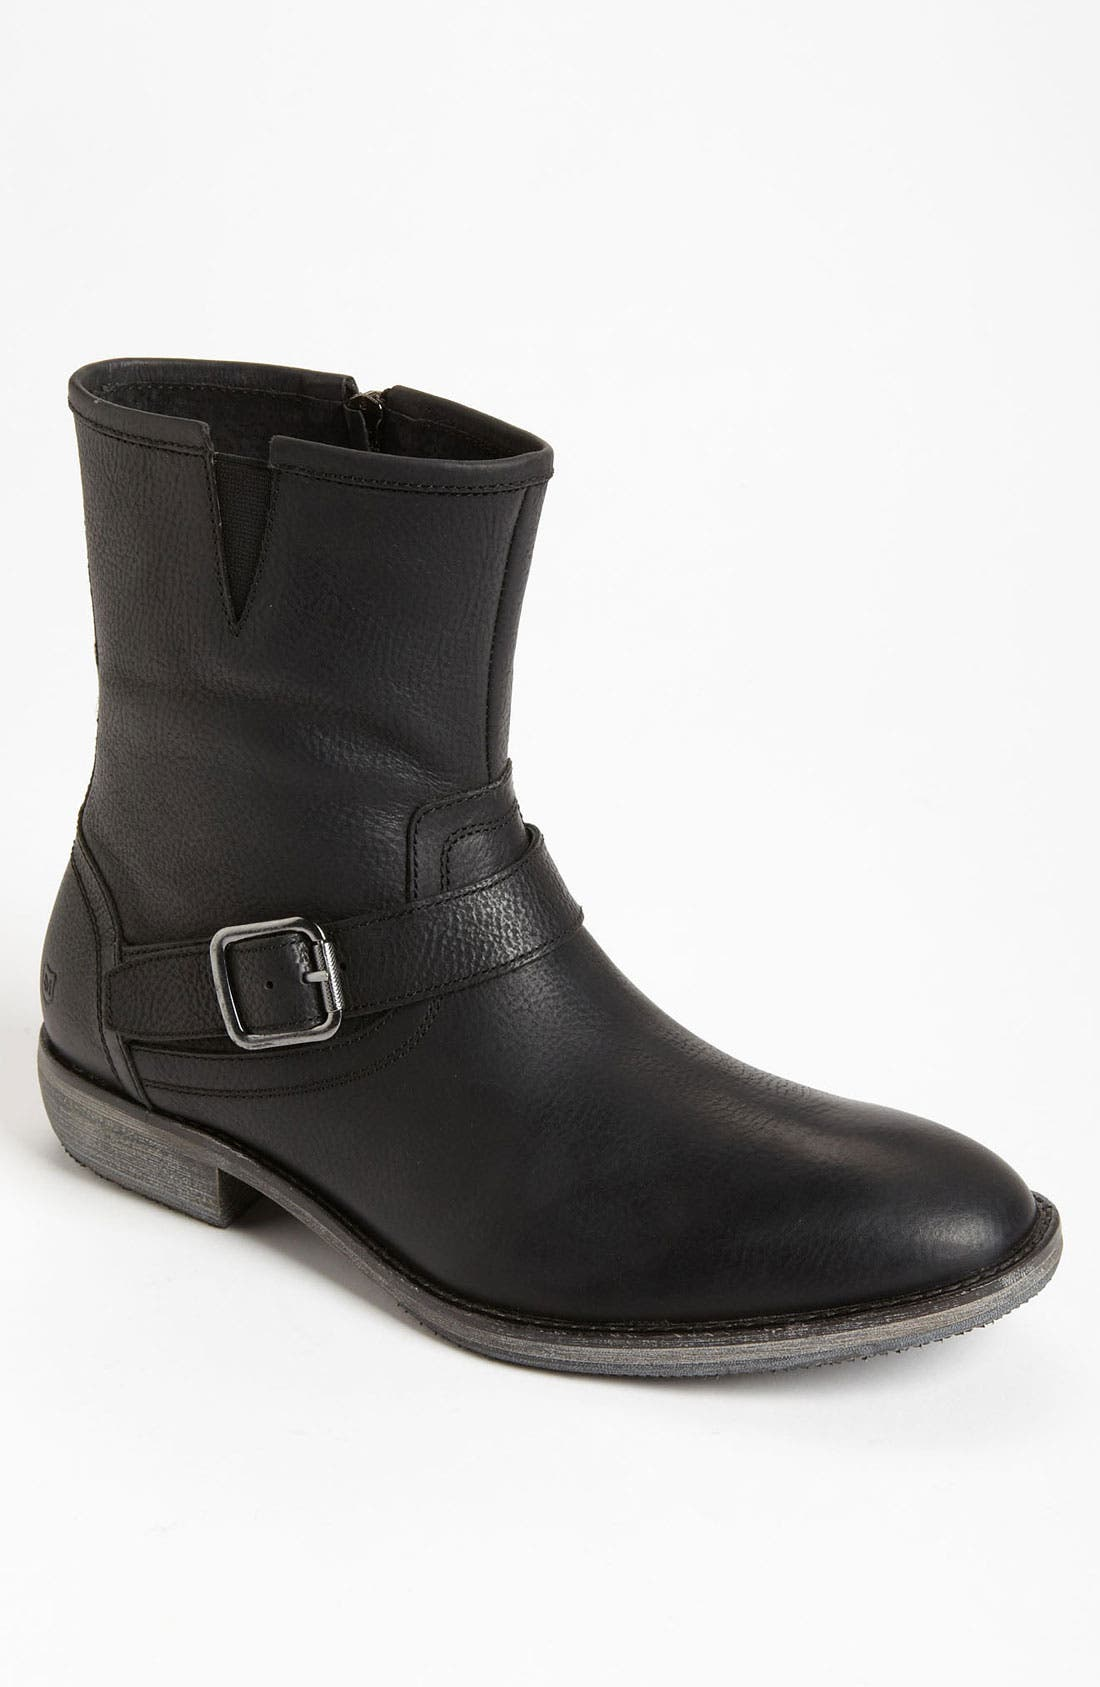 Alternate Image 1 Selected - Andrew Marc 'Roxbury' Boot (Men)